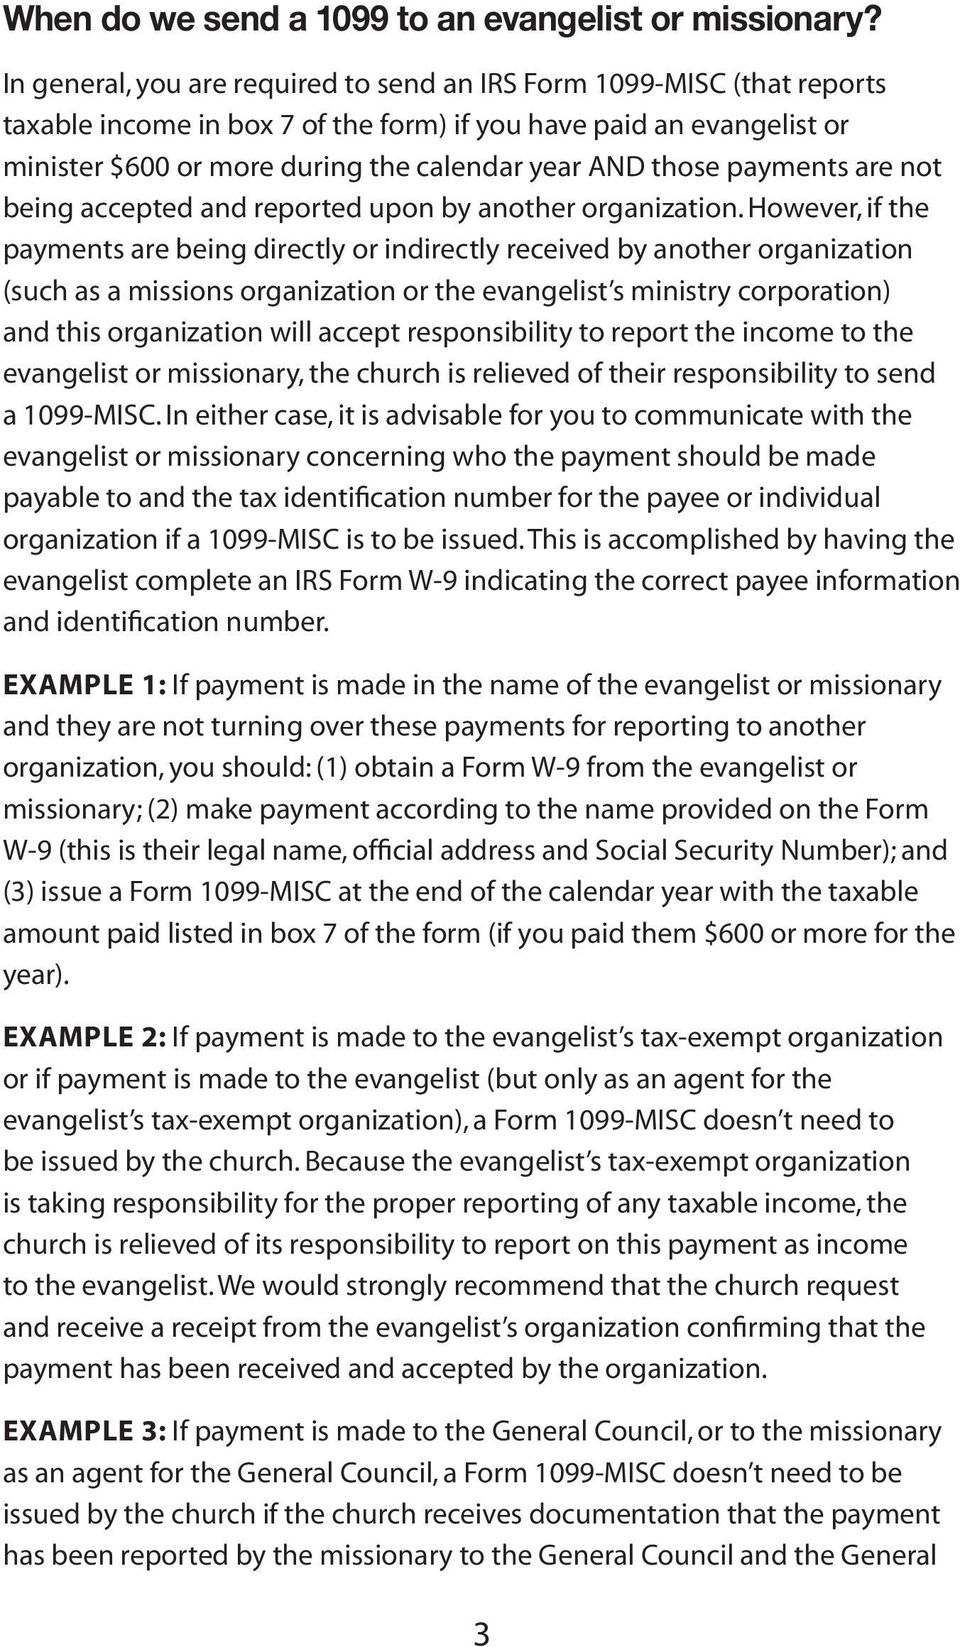 those payments are not being accepted and reported upon by another organization.